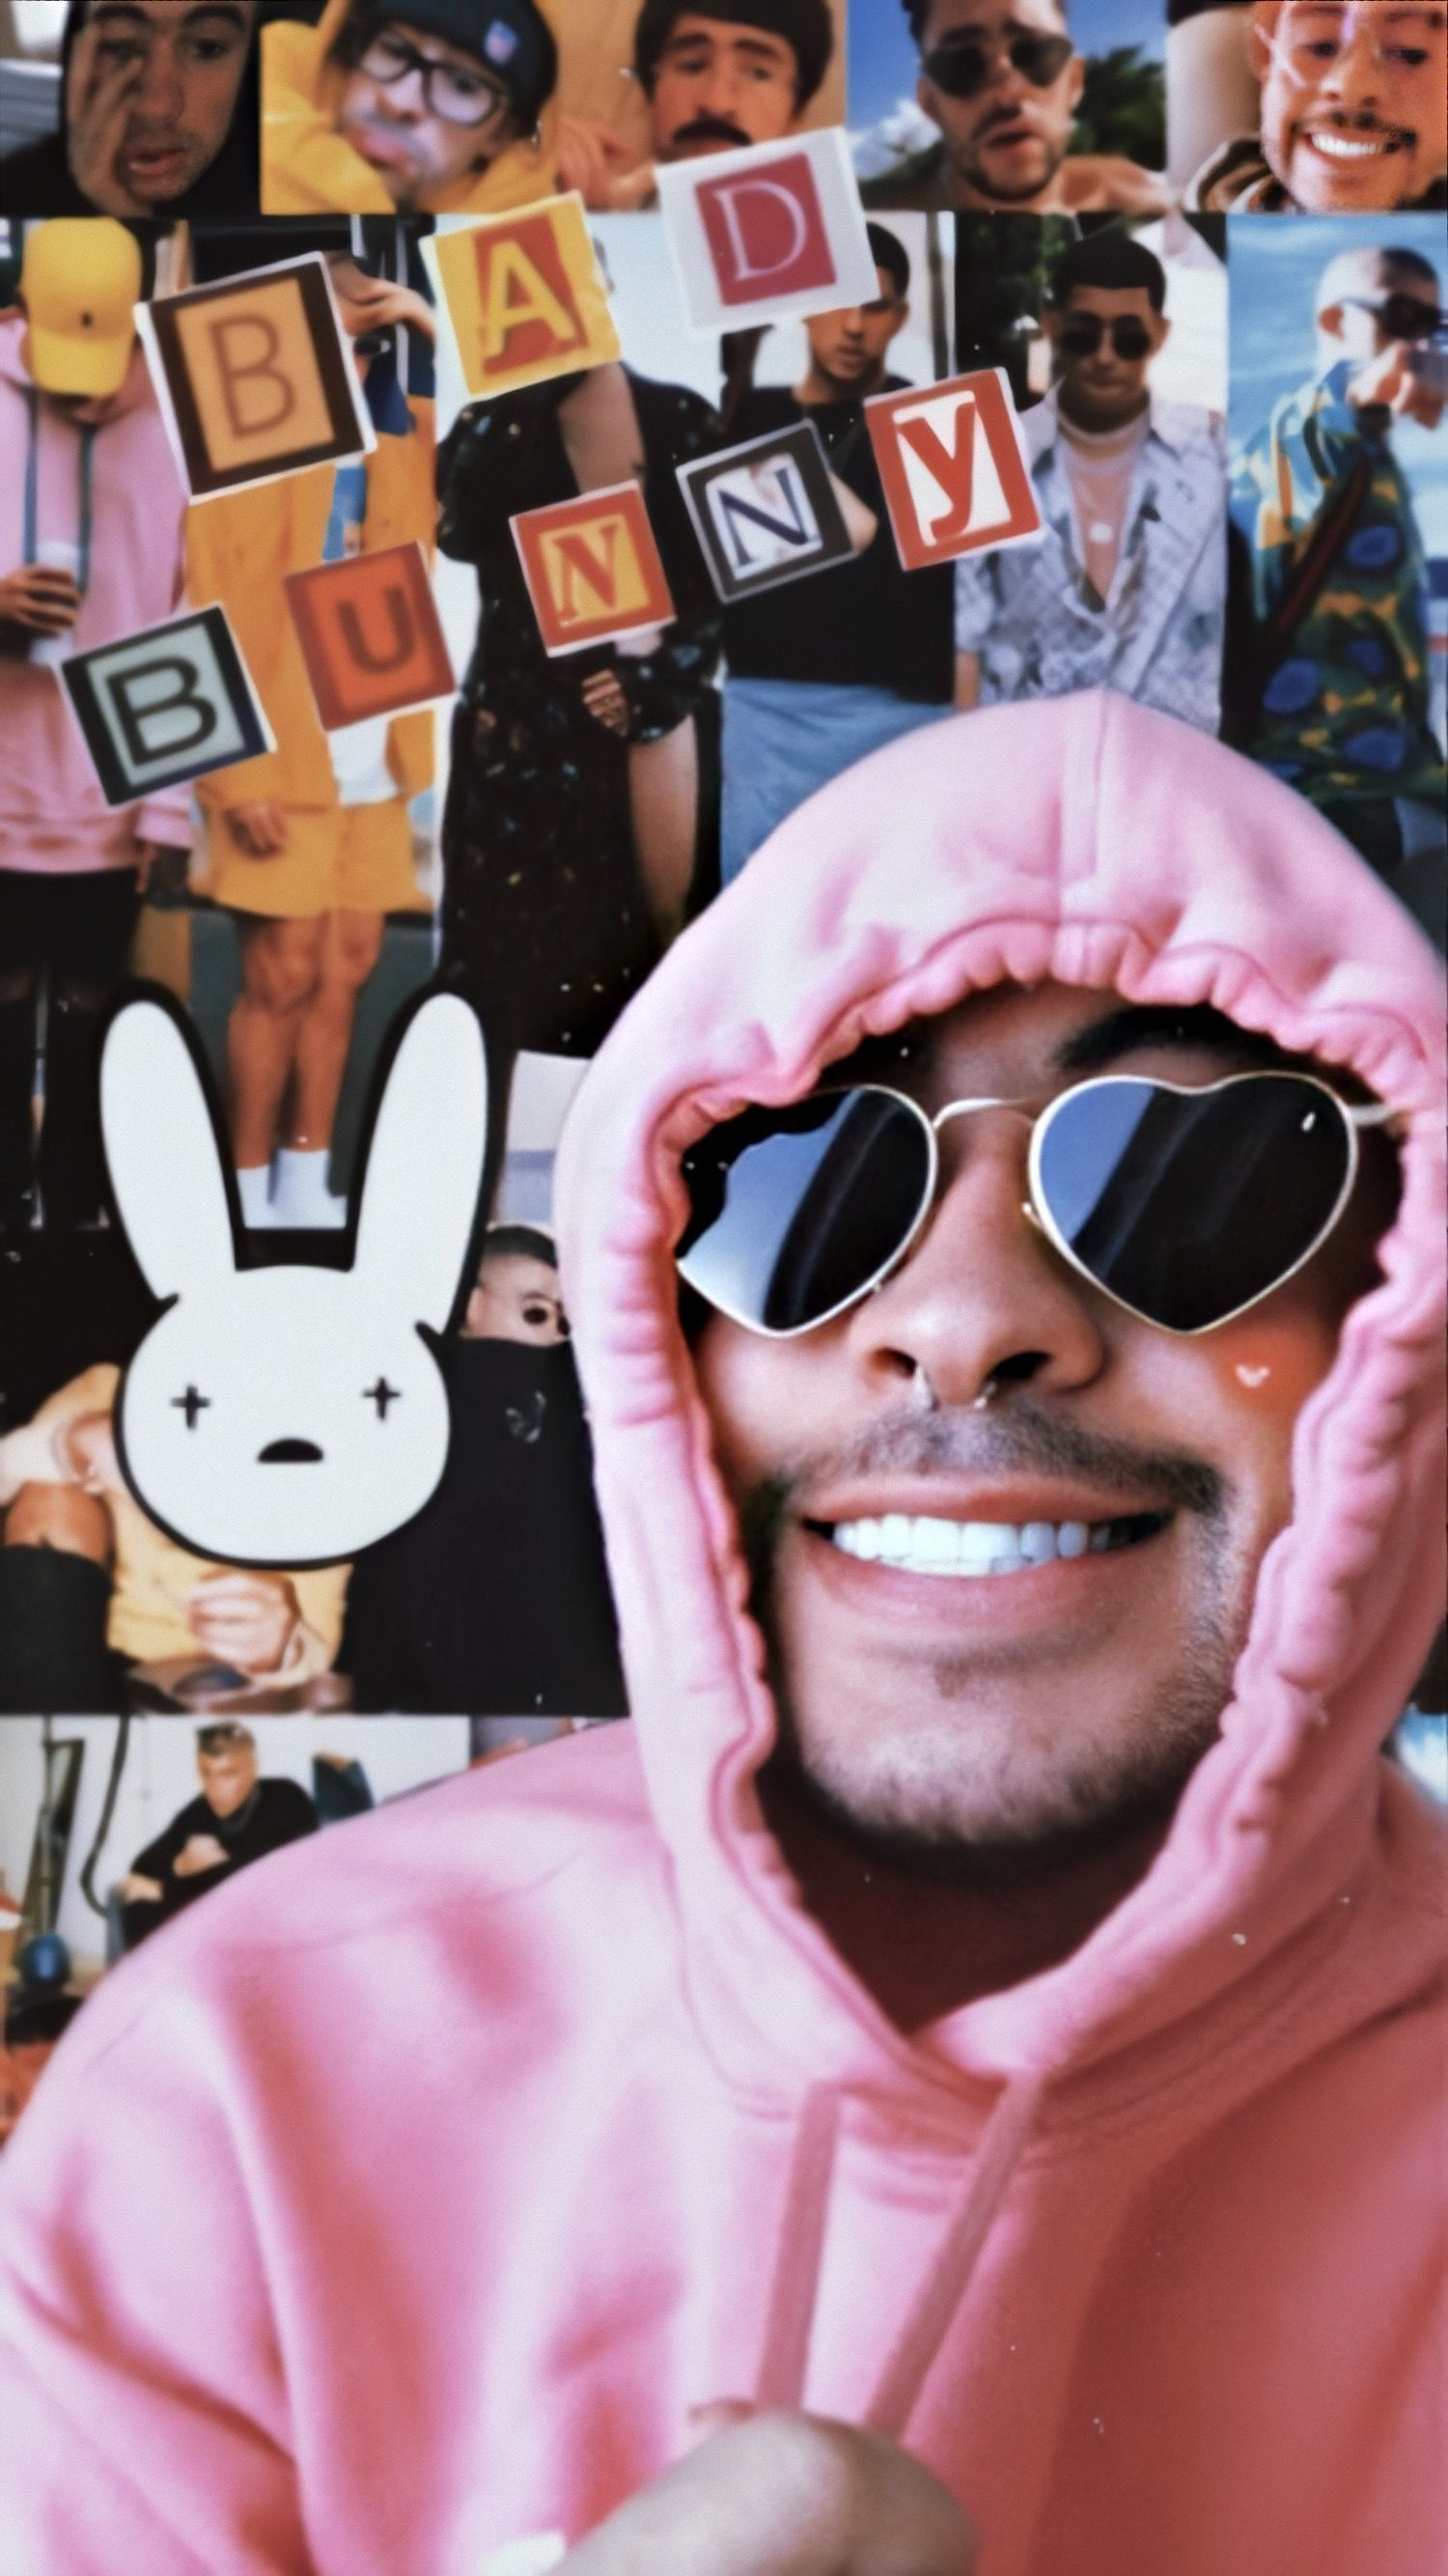 Bad Bunny 2020 Wallpapers Top Free Bad Bunny 2020 Backgrounds Wallpaperaccess